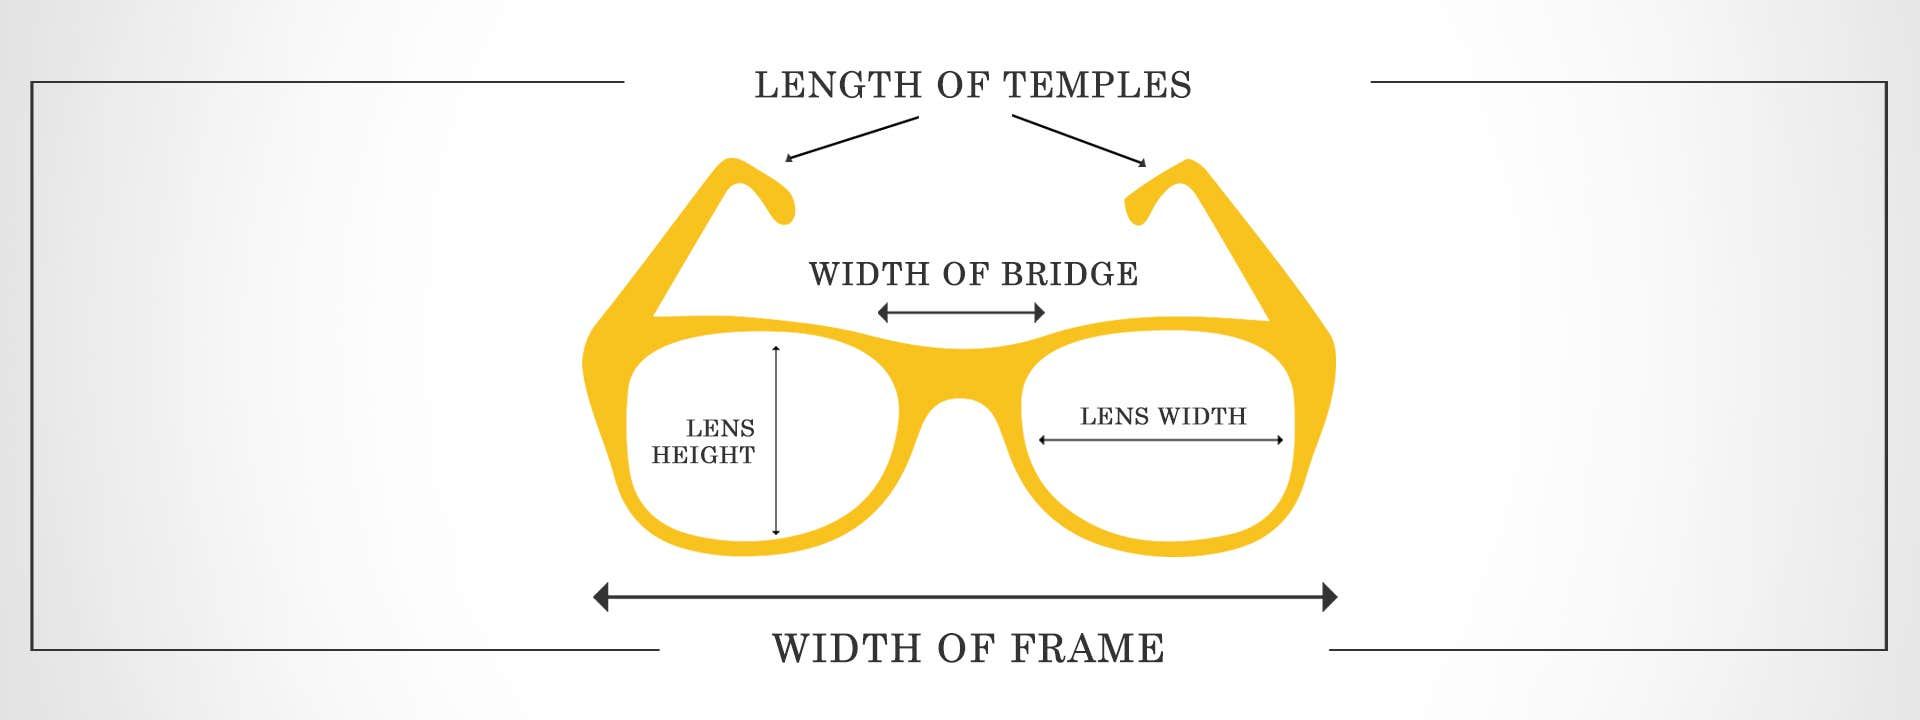 ACKNOWLEDGE YOUR FRAME SIZE